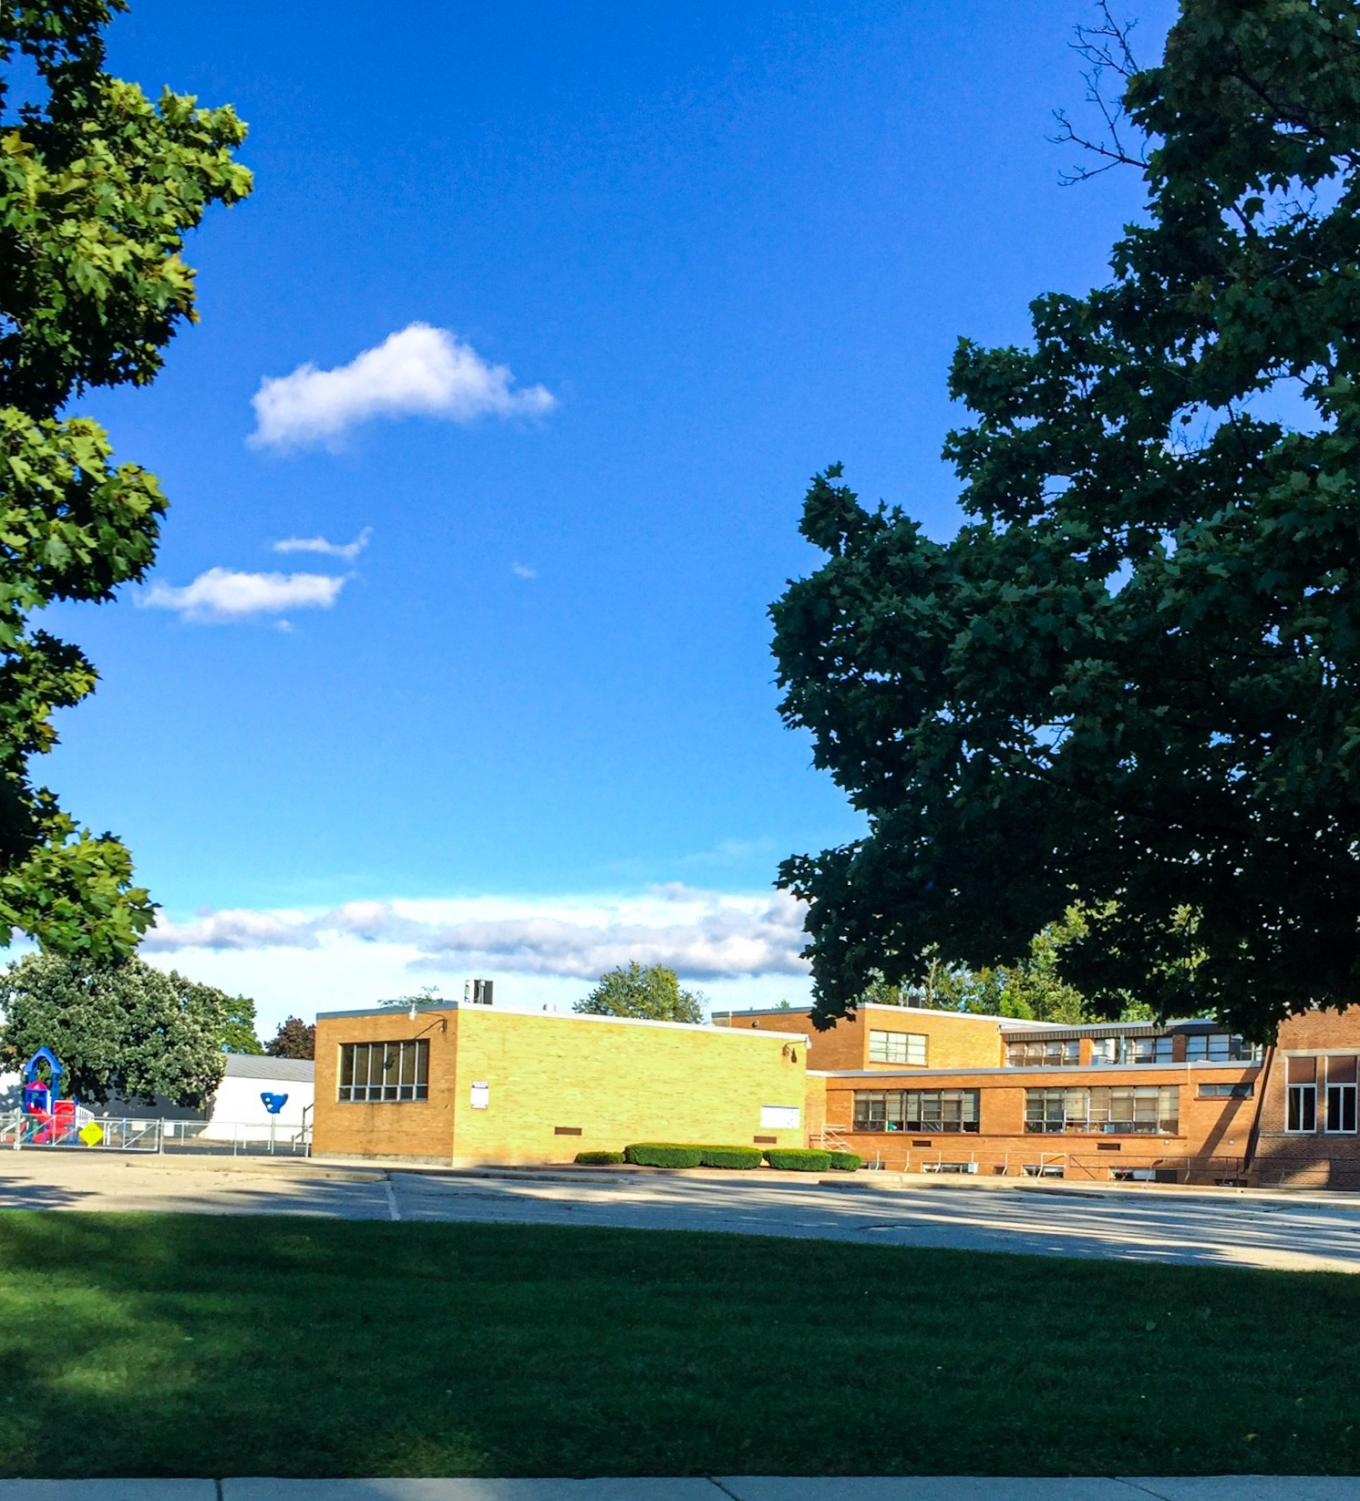 Antioch Elementary School has recycled its purpose as a early learning center. Mary Kay McNeil Learning Center is a program that services preschool and kindergarten.